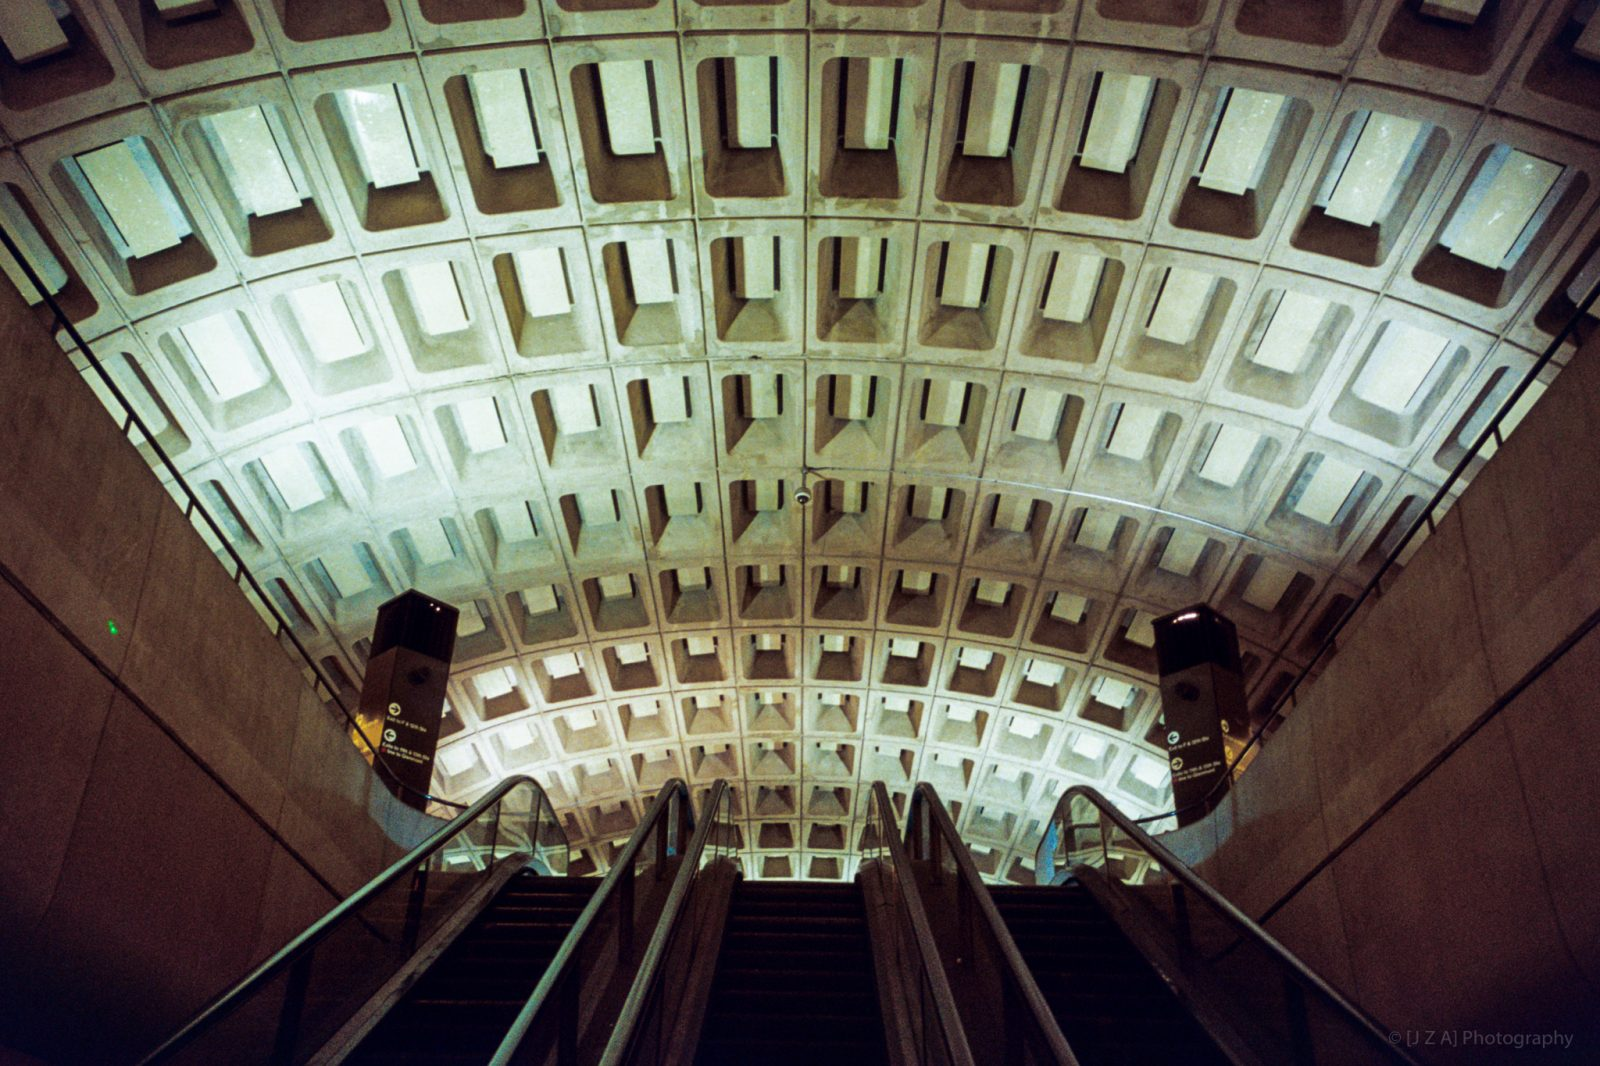 Metro, Washington DC